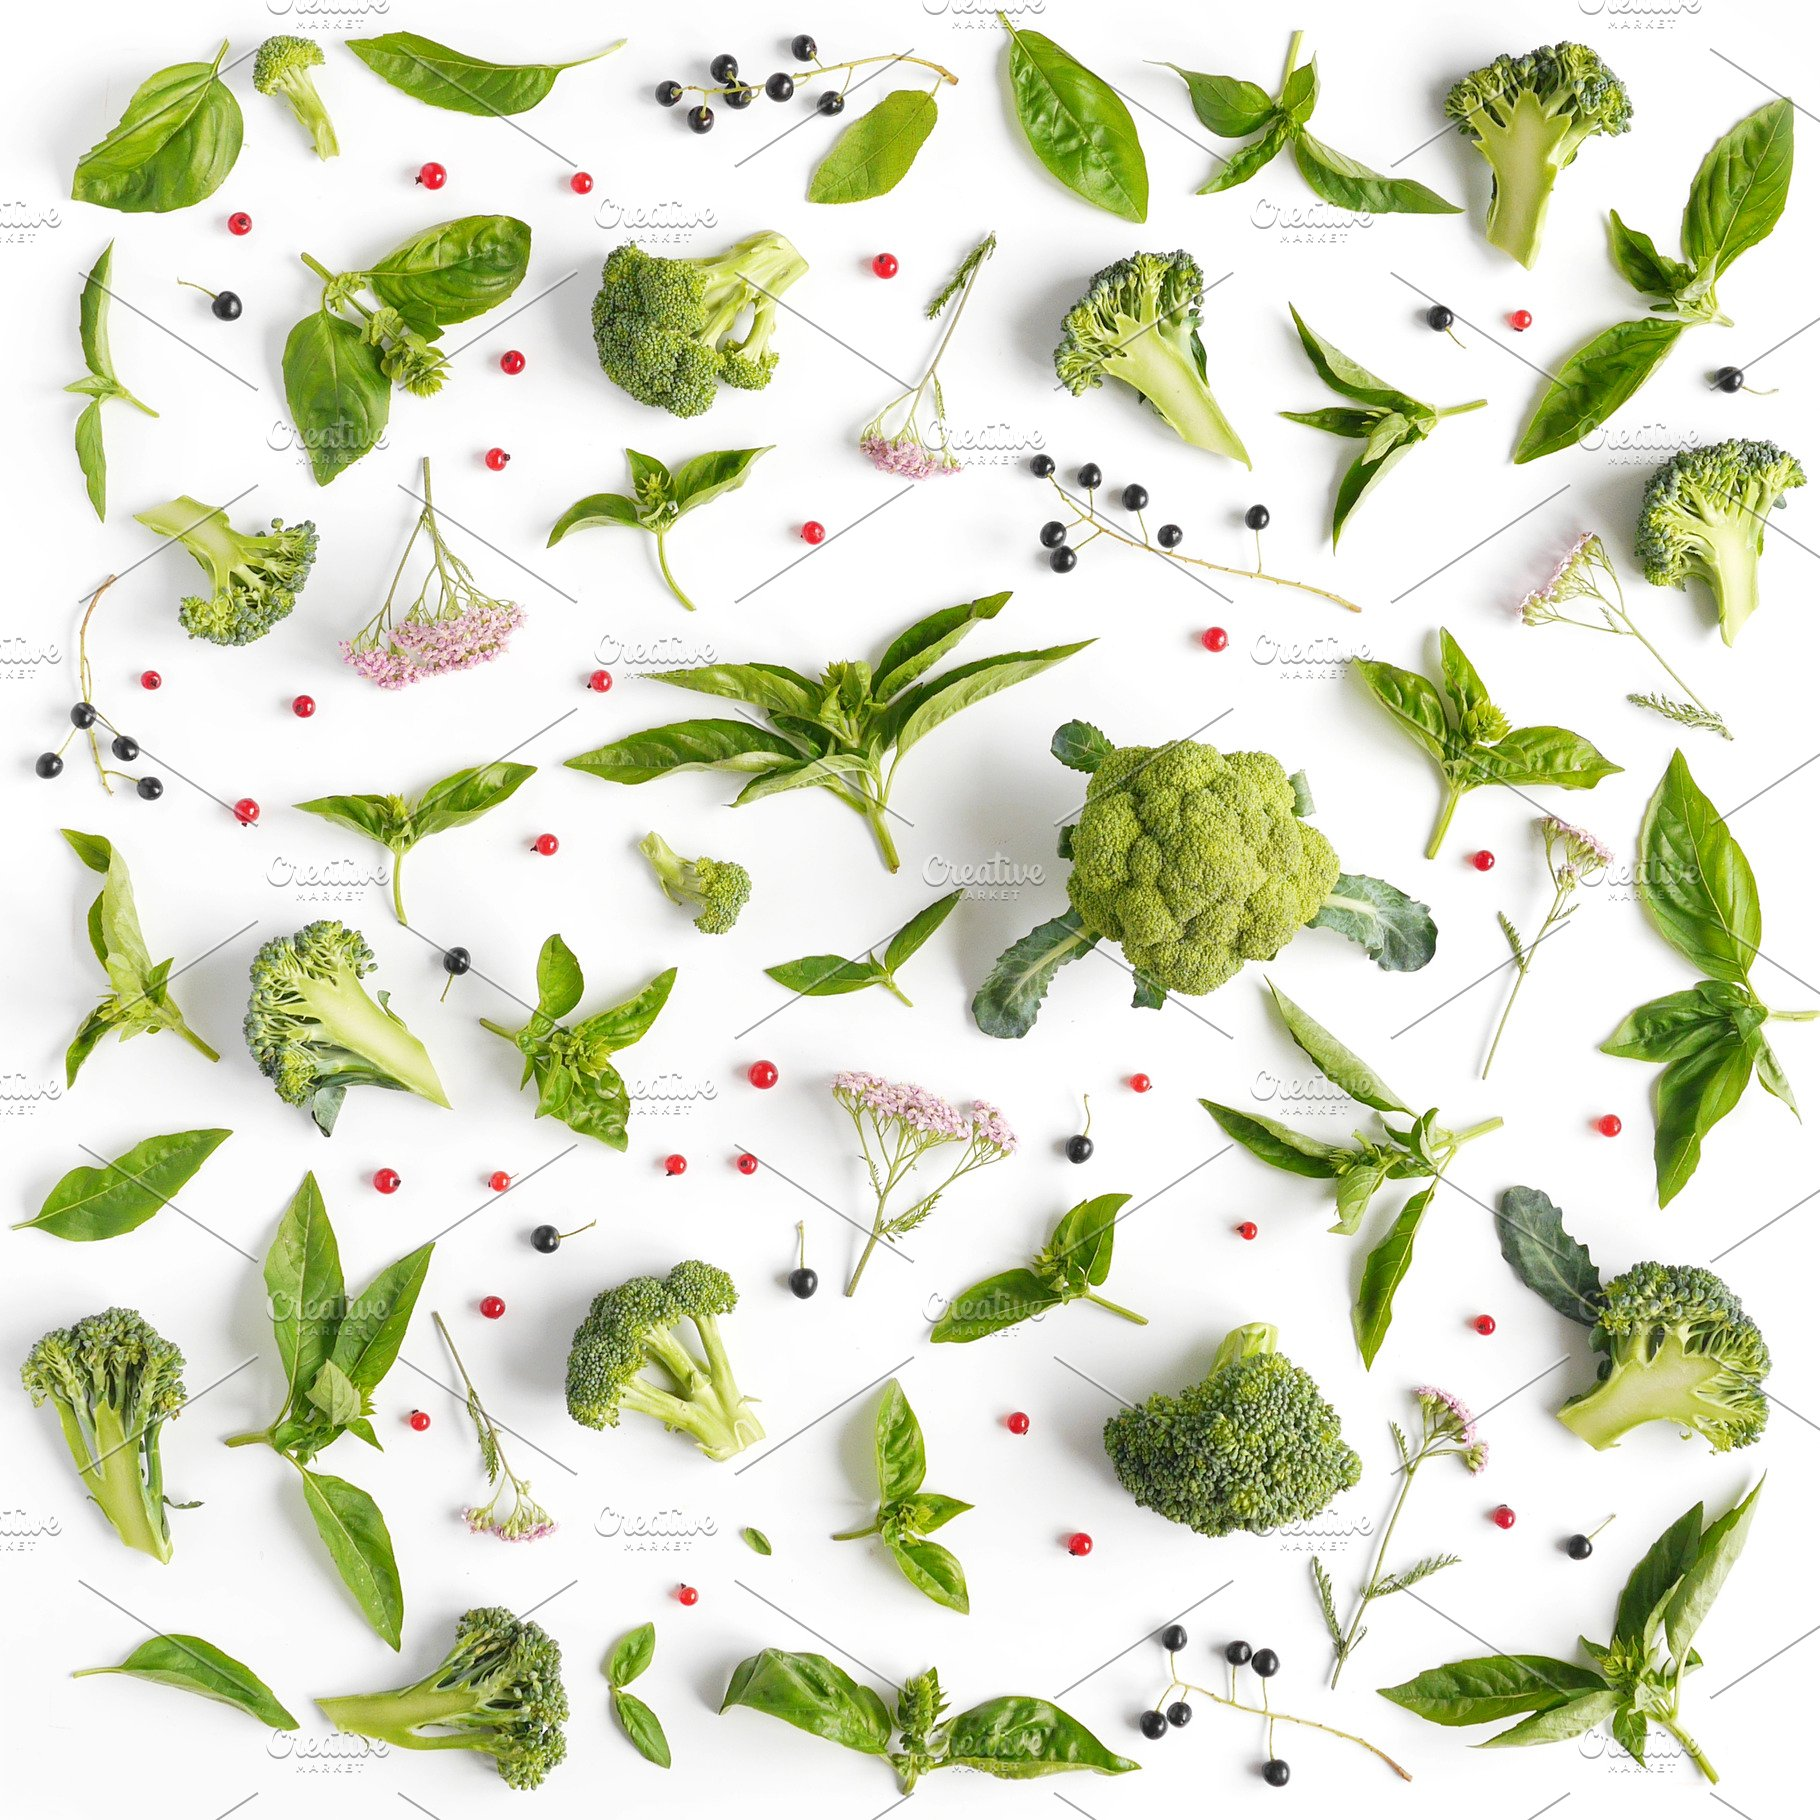 Green basil leaves and broccoli.